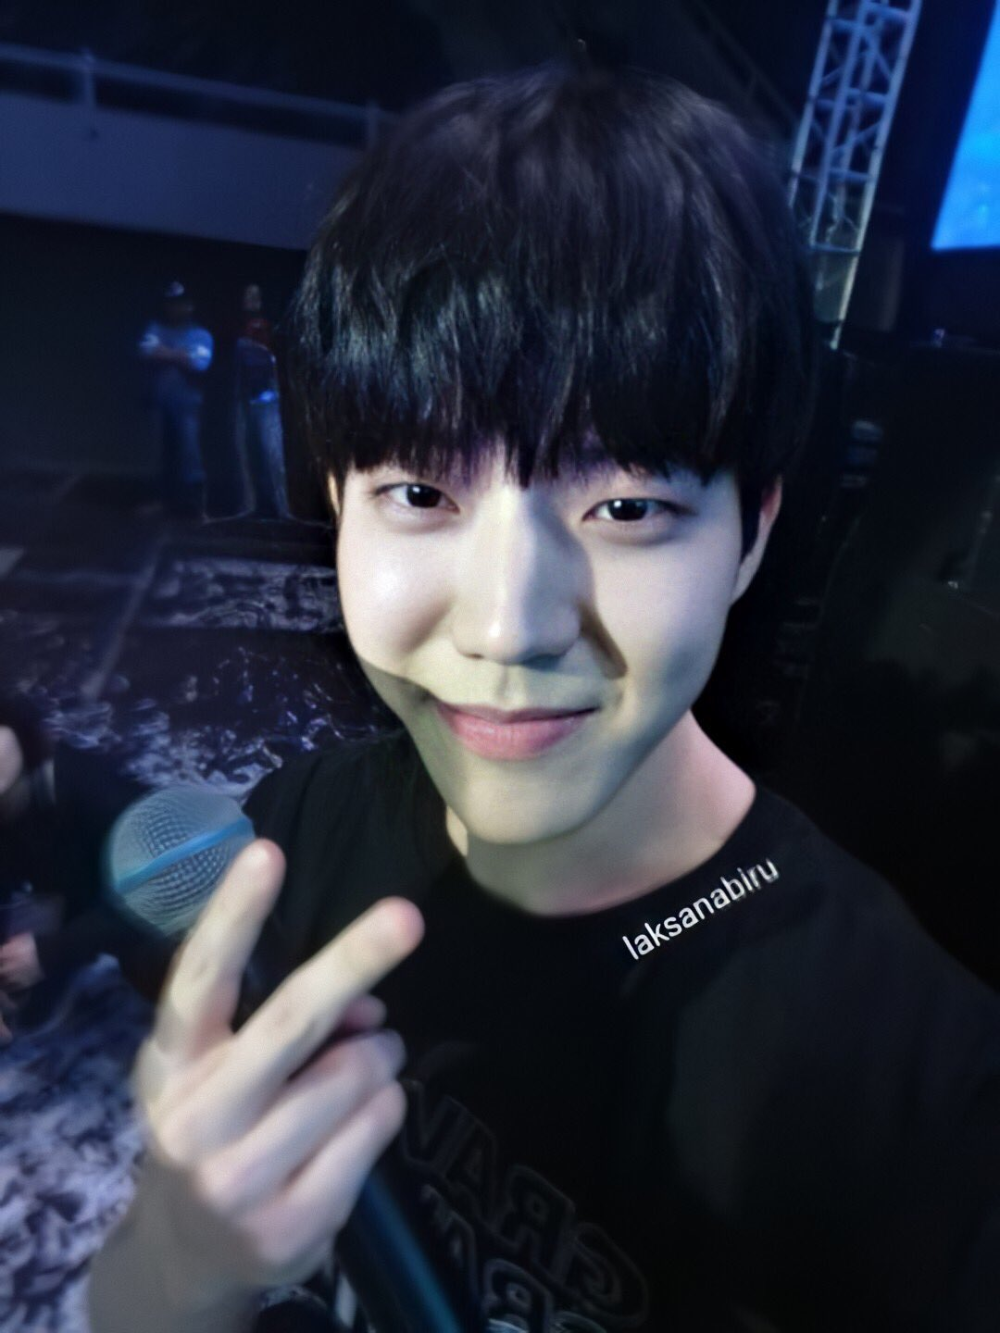 ren ᗧ• • • on Twitter in 2020 Day6 dowoon, Day6, Jyp artists